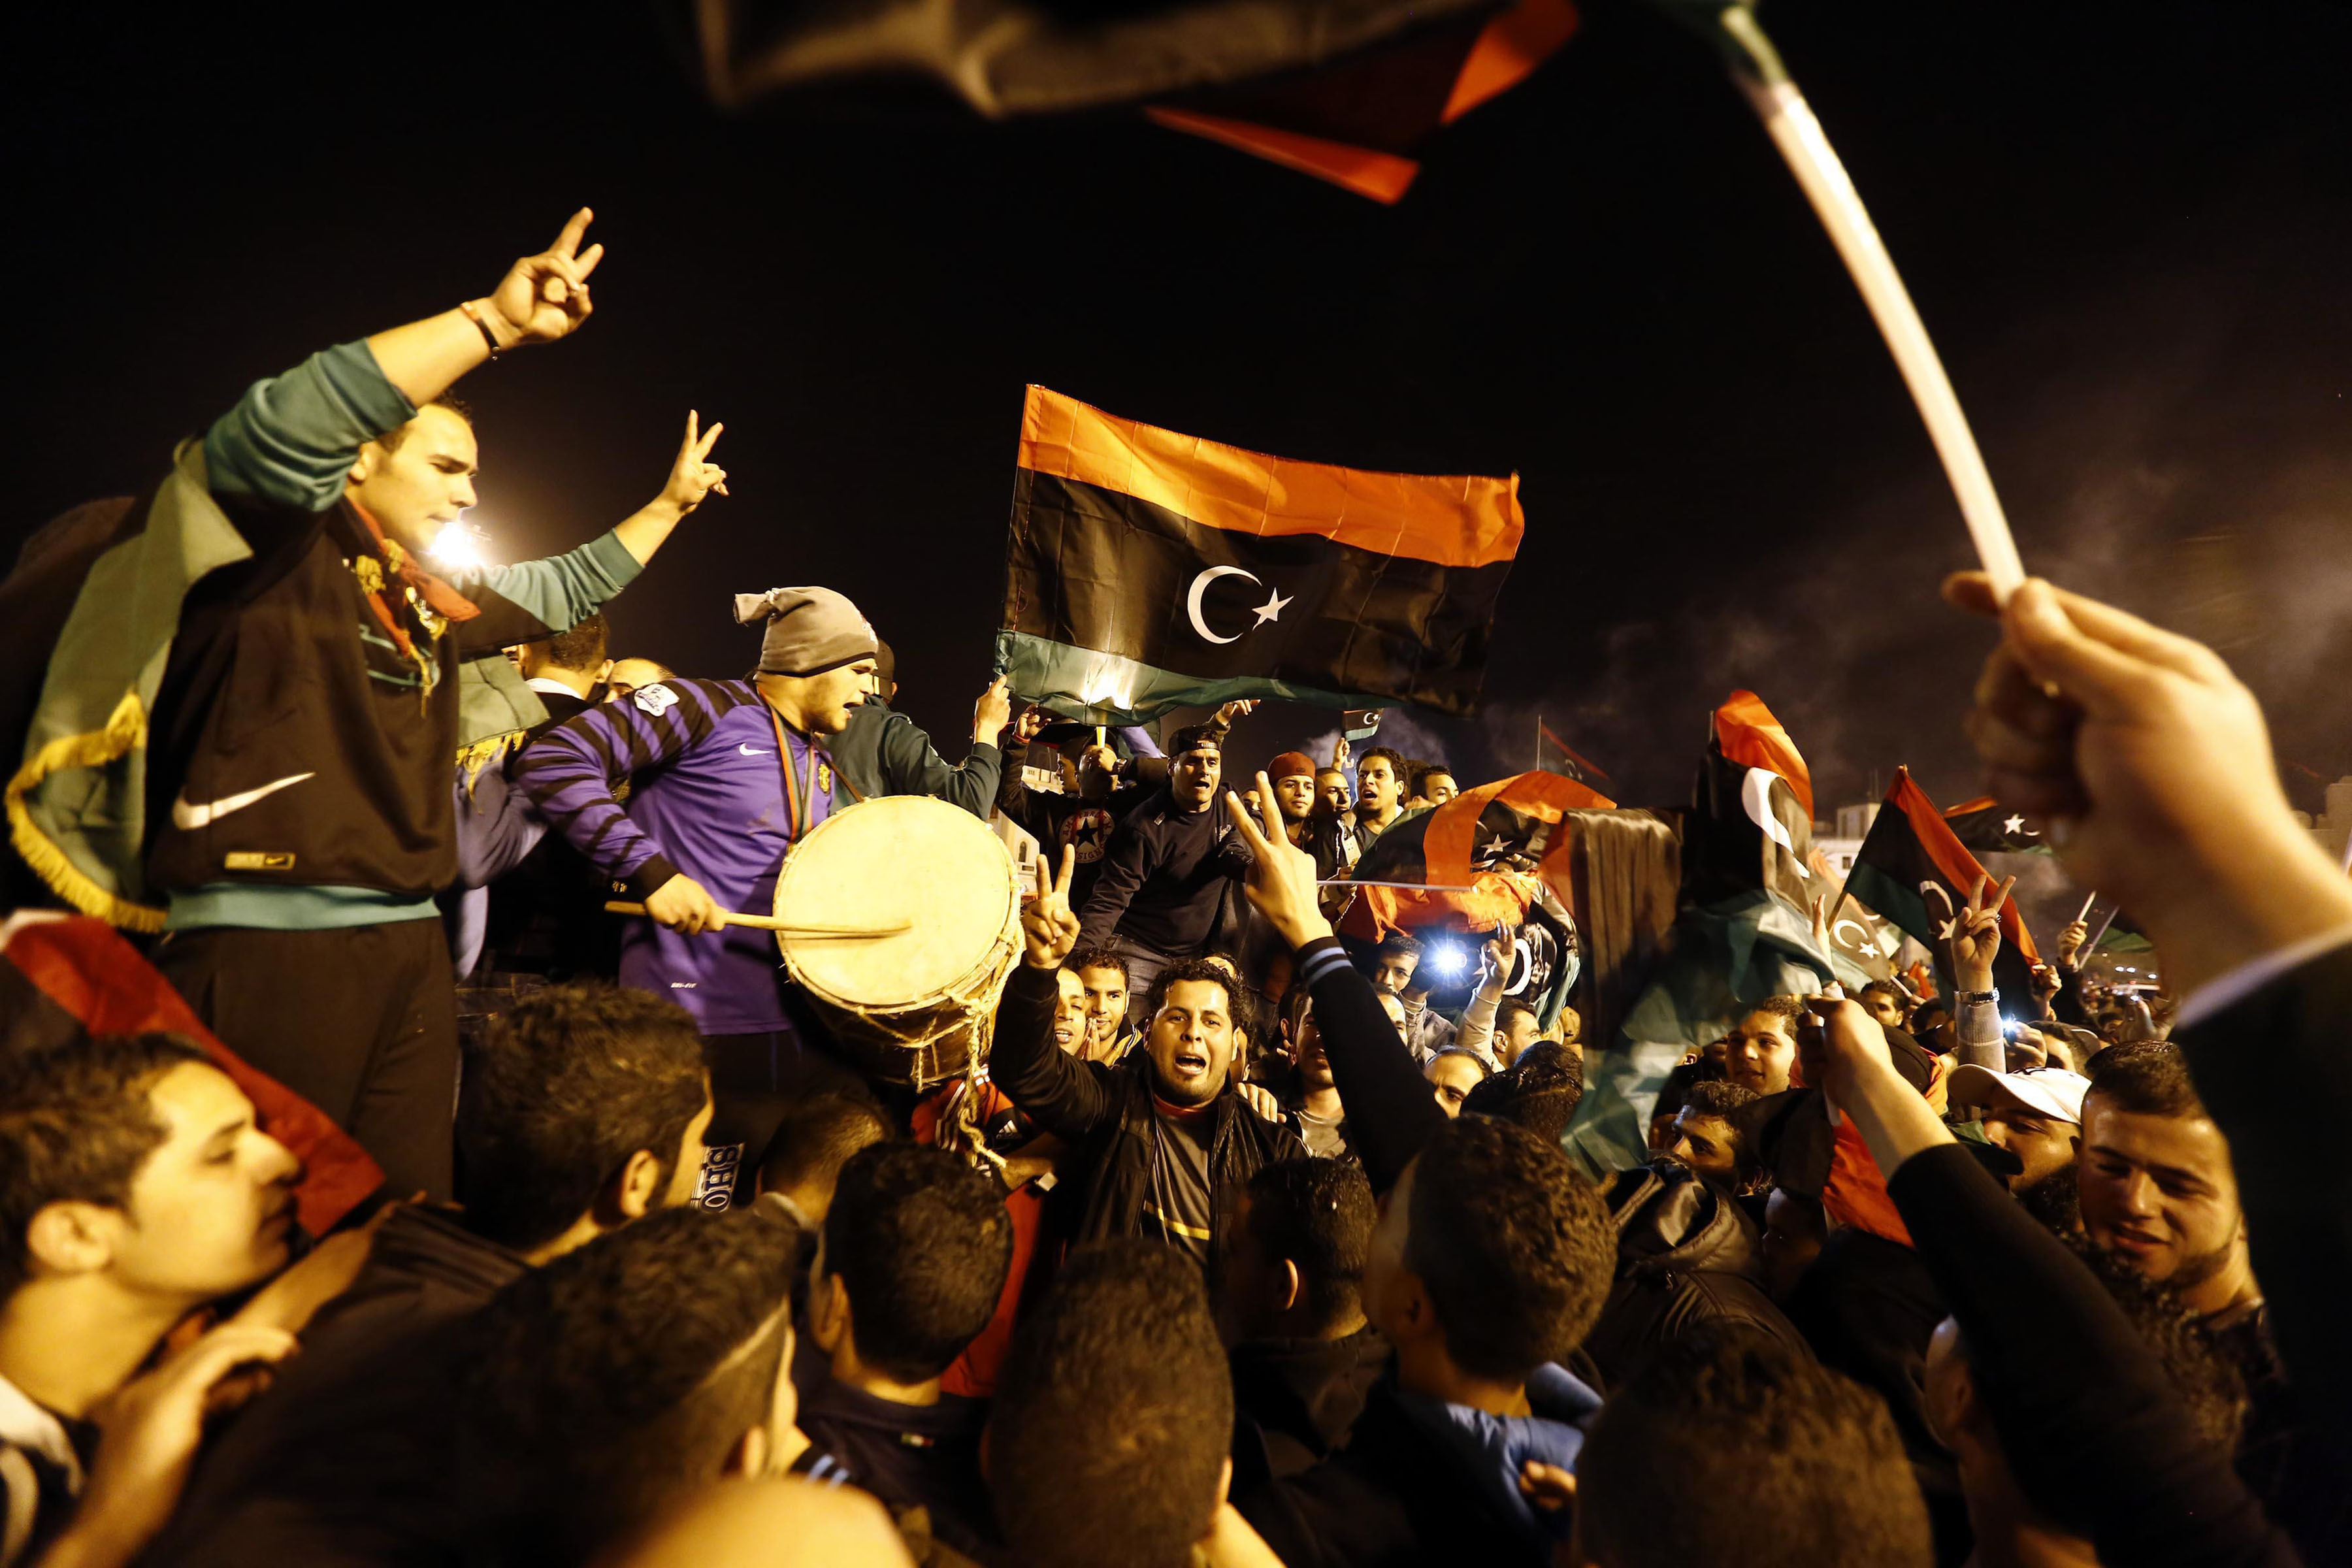 29 January 2014: Libyan football fans celebrate in Martyrs' Square after their national team defeated Zimbabwe in the African Nations Championship semi-final football match in Tripoli, Libya. (Photo by Hazem Turkia/Anadolu Agency/Getty Images)